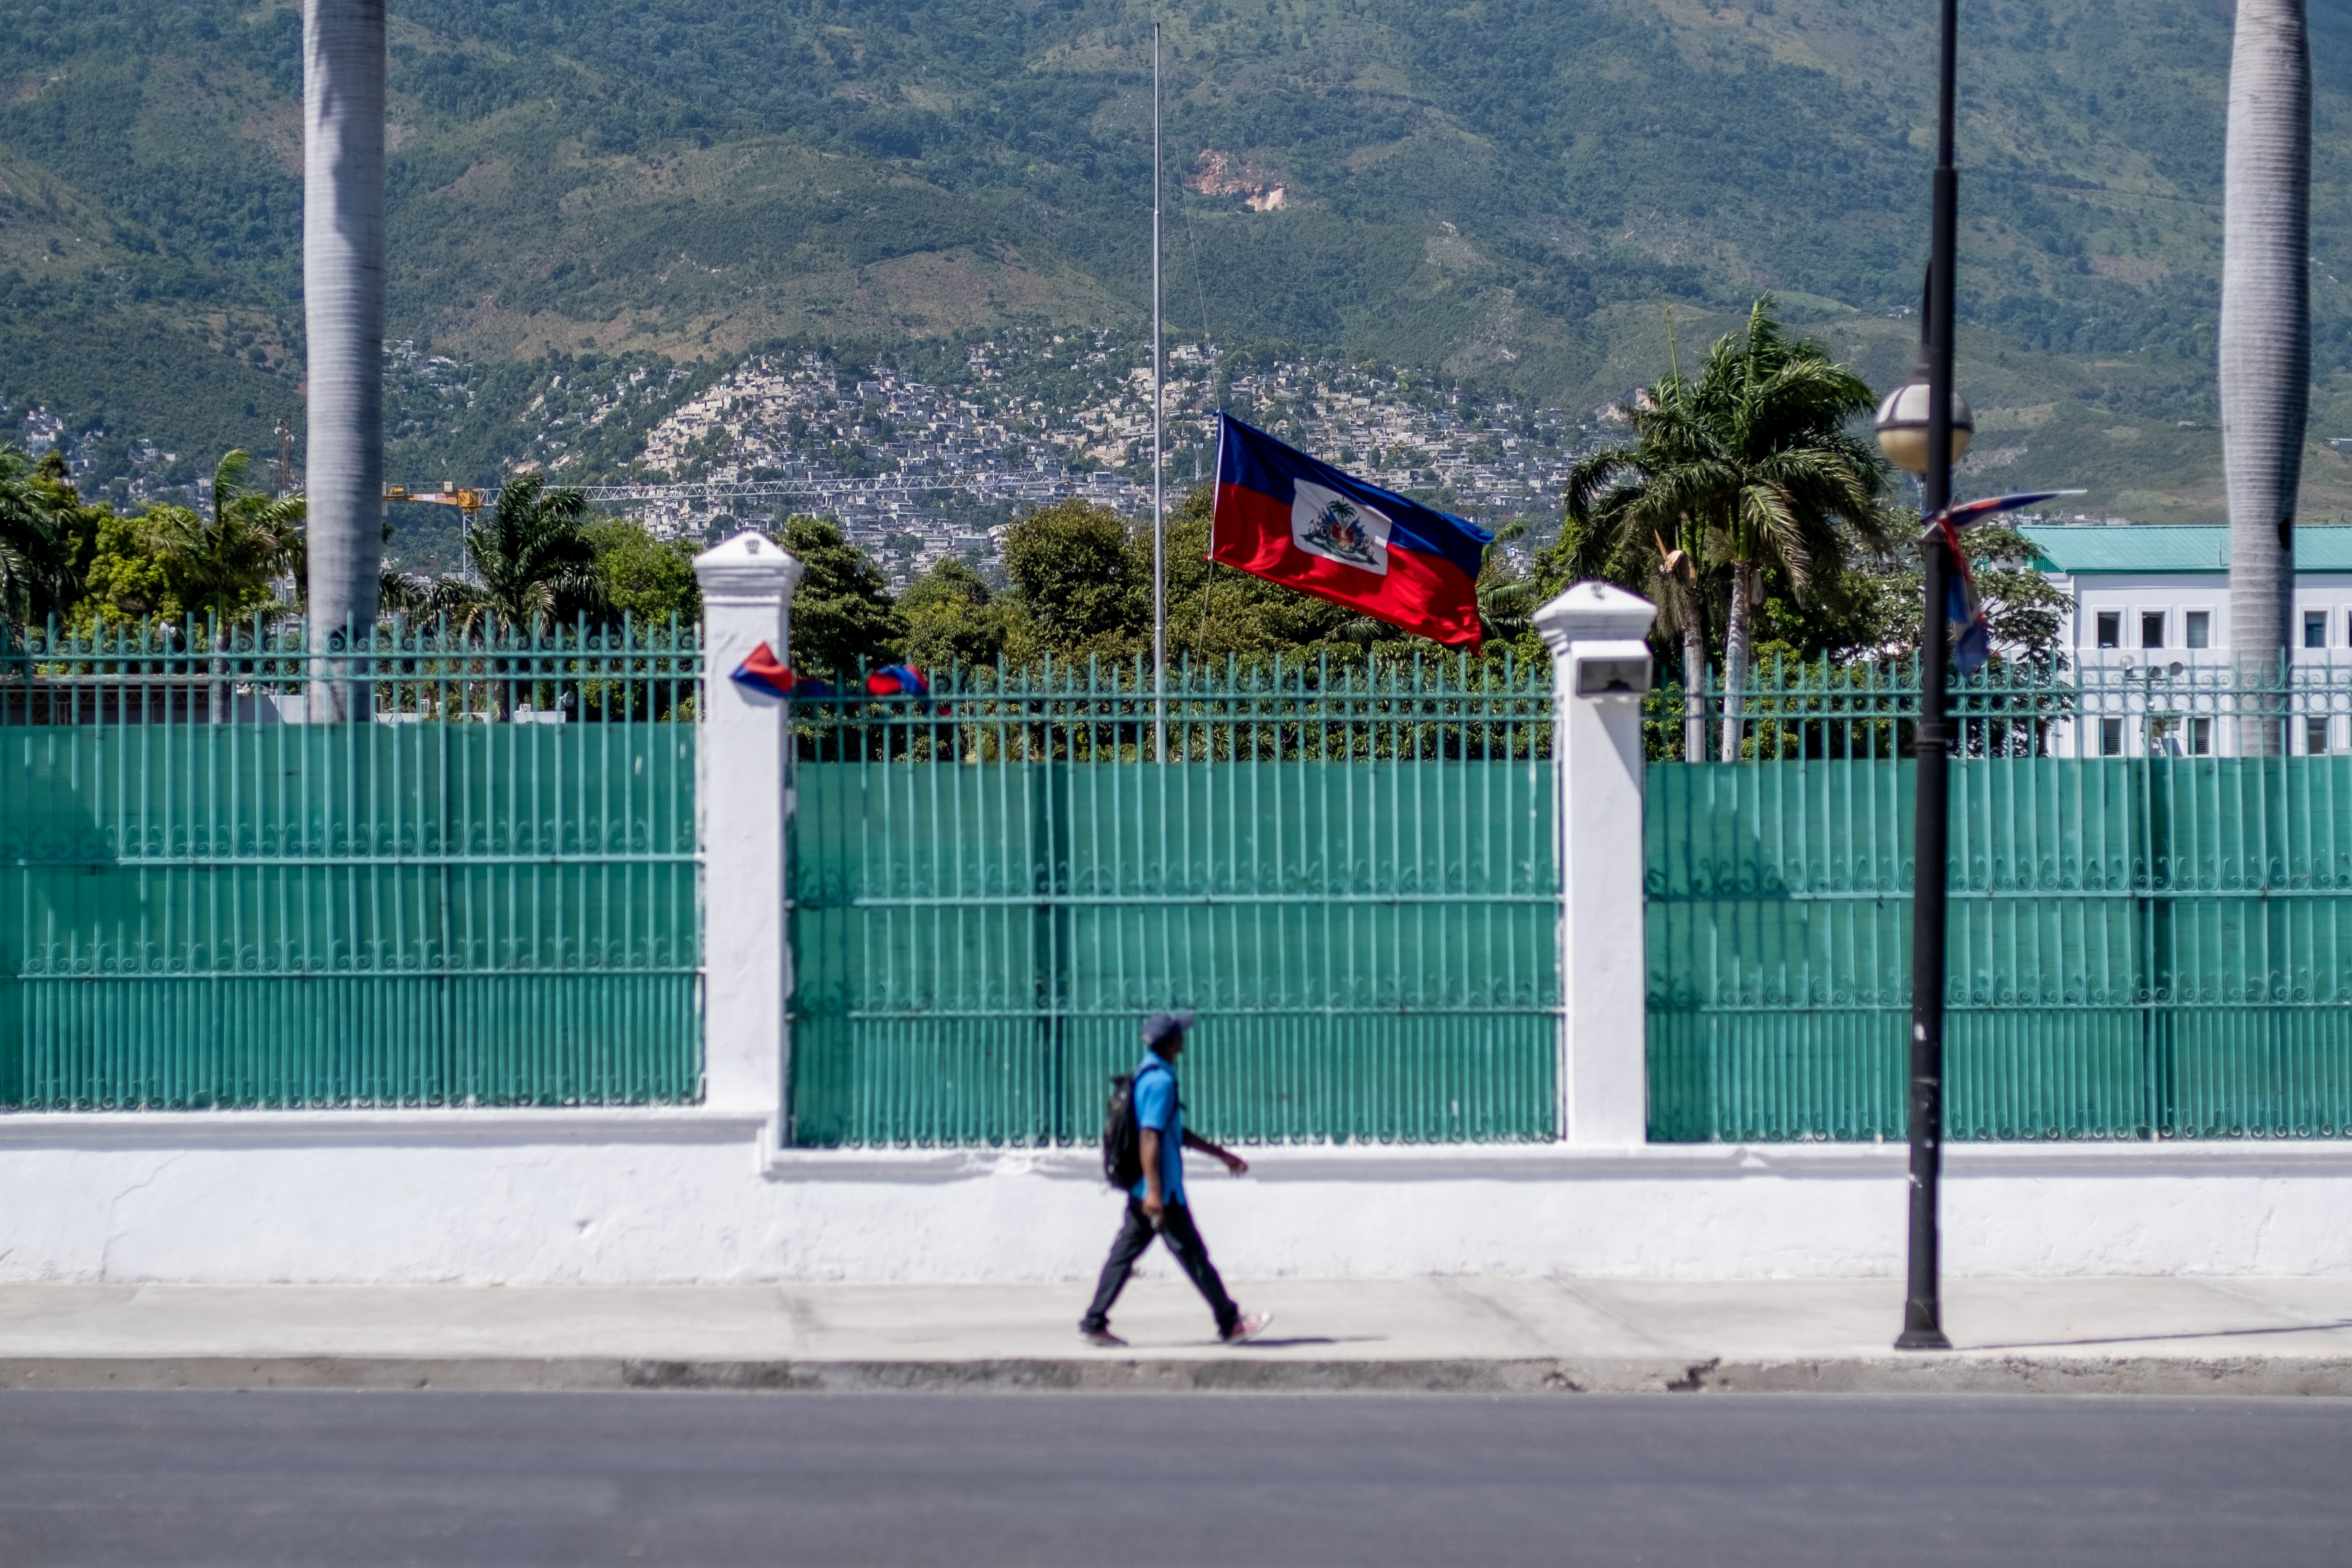 A man walks past in front of where the Haitian Presidential Palace used to be with the Haitian national flag at half-mast, following the assassination of President Jovenel Moise, in Port-au-Prince, Haiti July 10, 2021.  REUTERS/Ricardo Arduengo